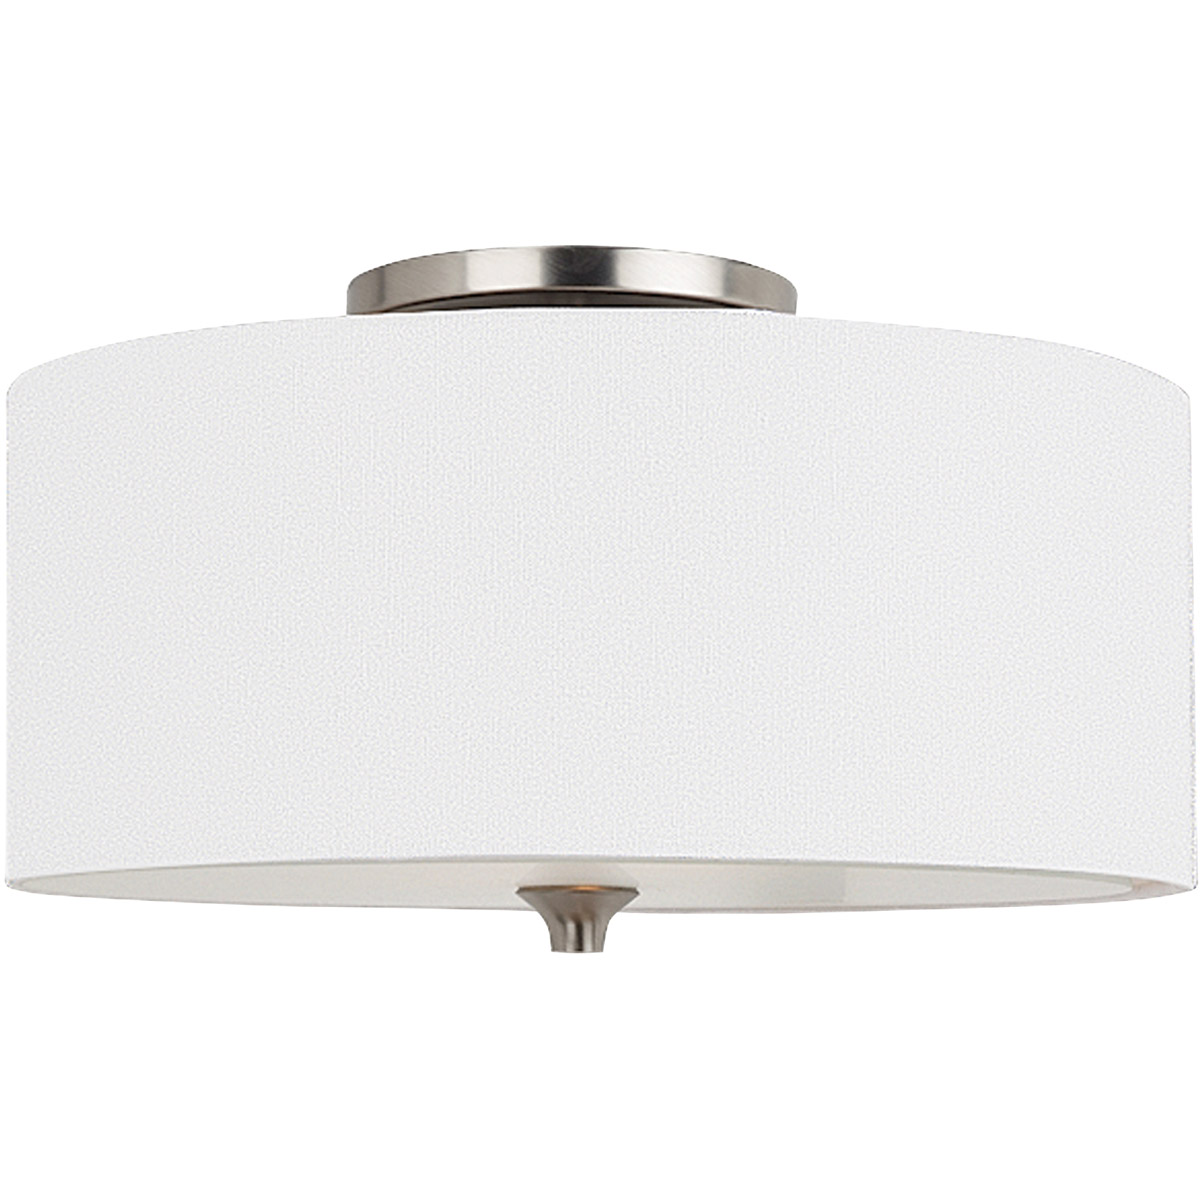 Sea Gull 75952-962 Stirling 2 Light 14 inch Brushed Nickel Flush Mount Ceiling Light in White Linen Fabric, Standard photo